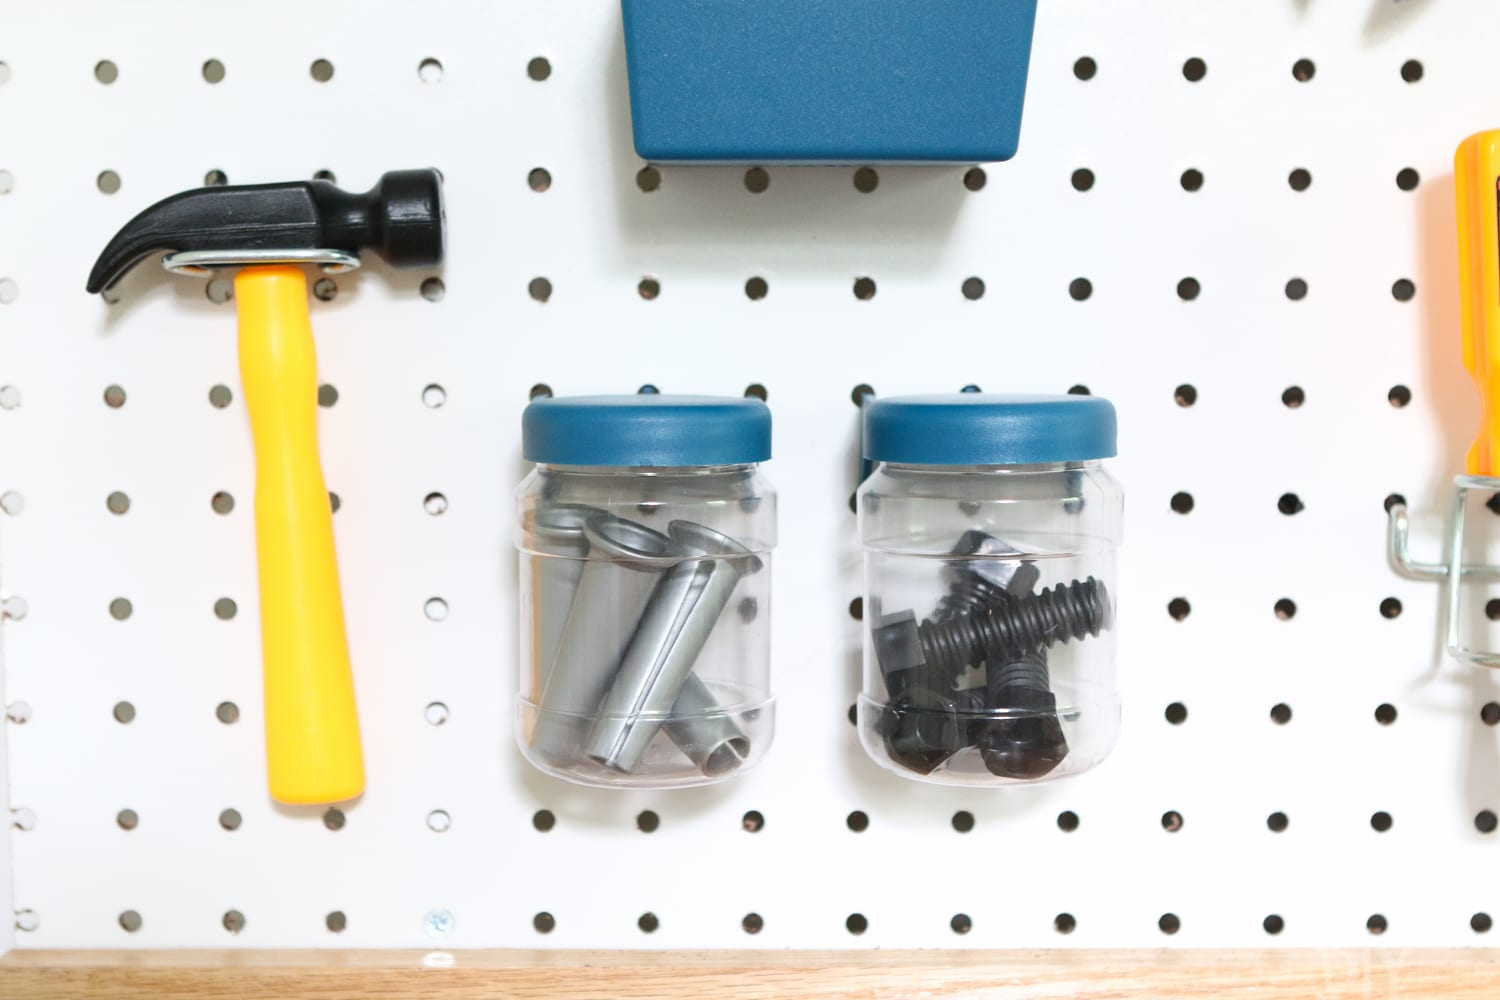 The supplies: DIY Kid's Tool Bench: Step by Step Tutorial | DIY Playbook